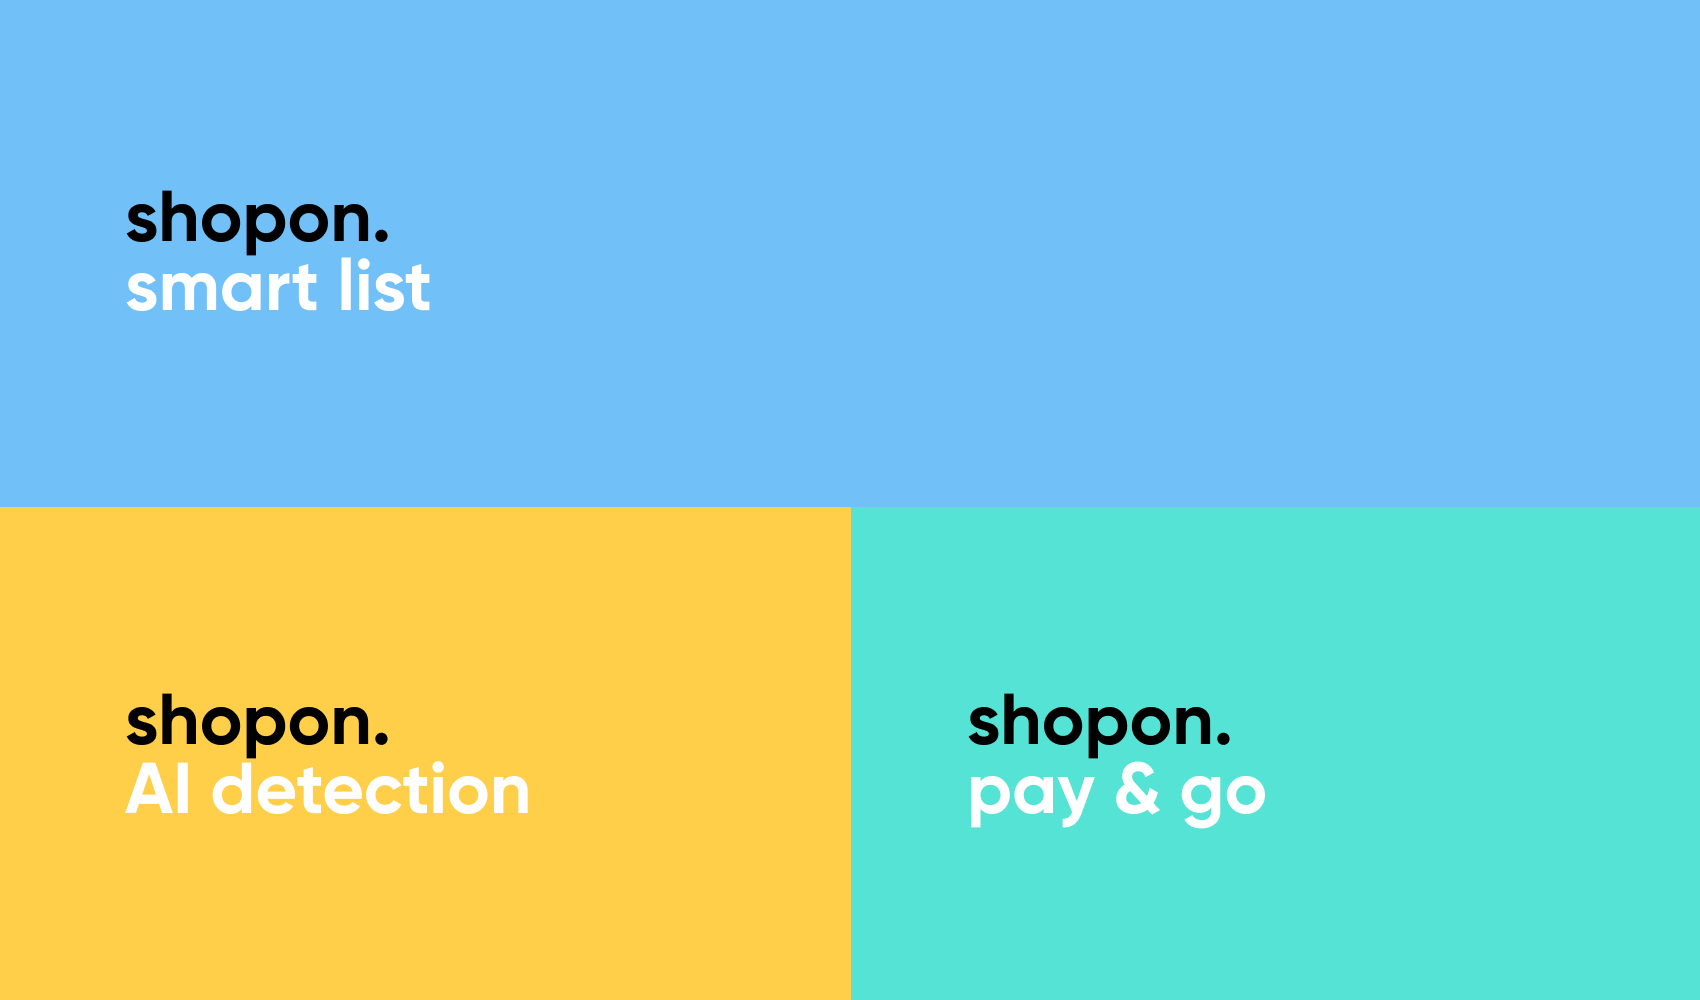 UI/UX design of shopon, a mobile application to make shopping for visually impaired easier